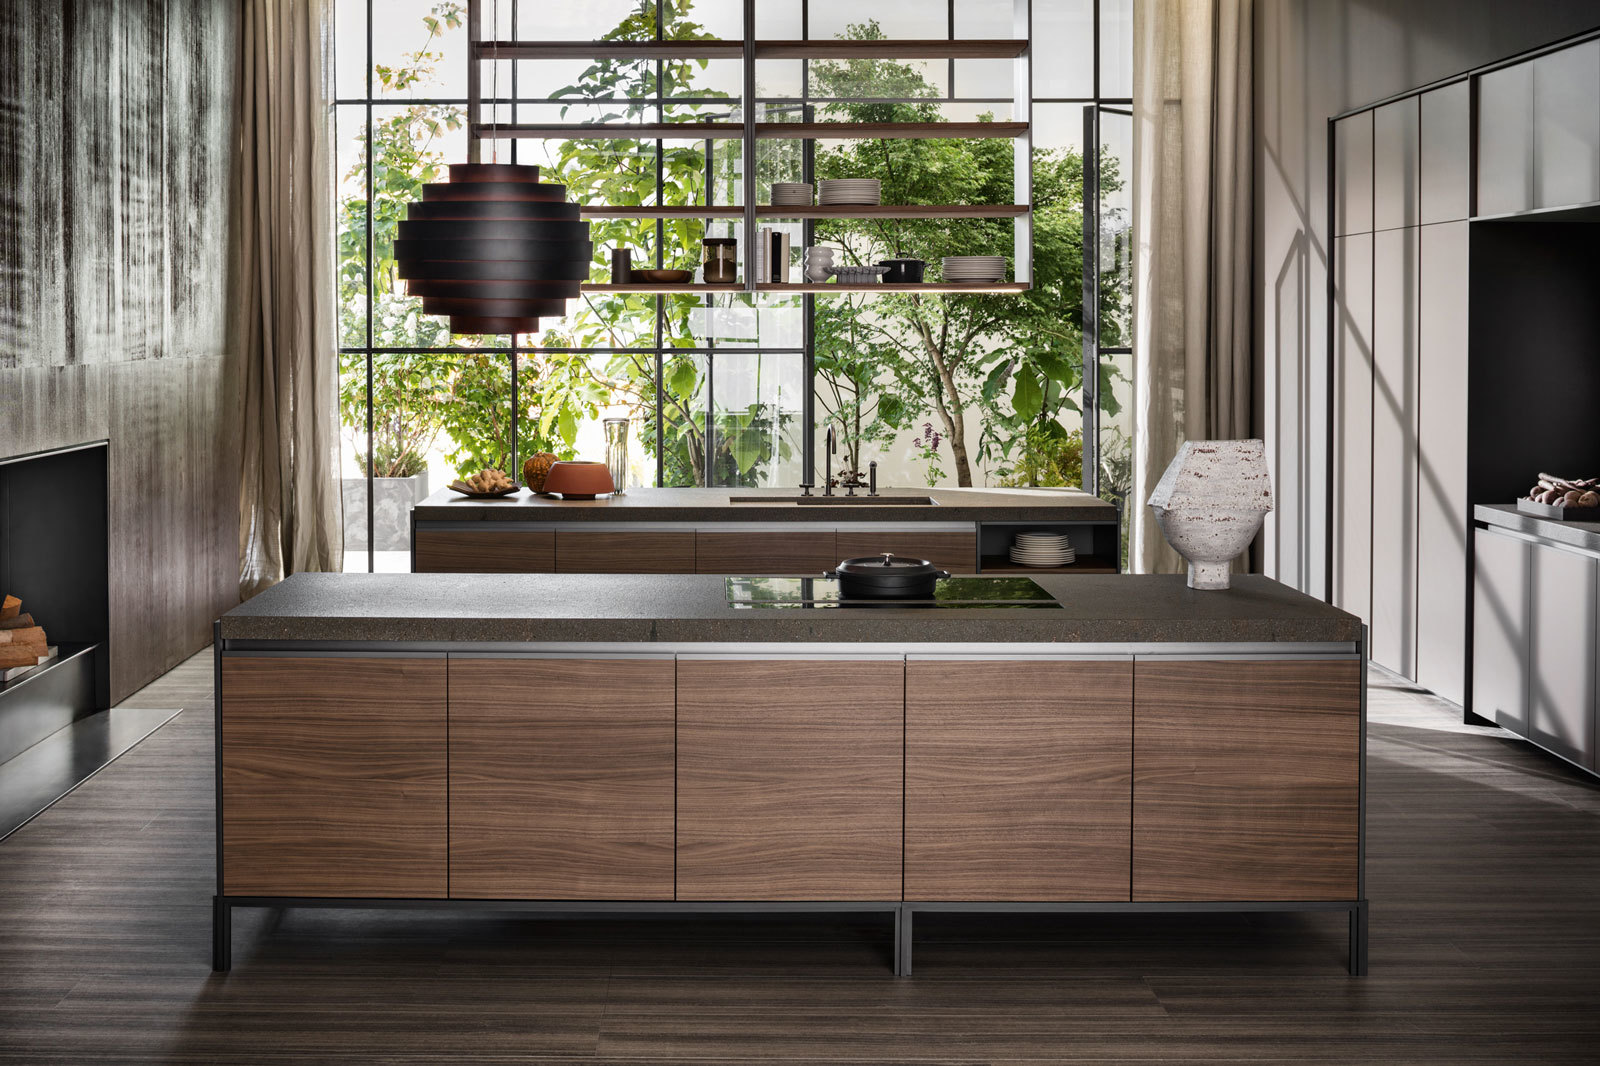 Dada Kitchens New York